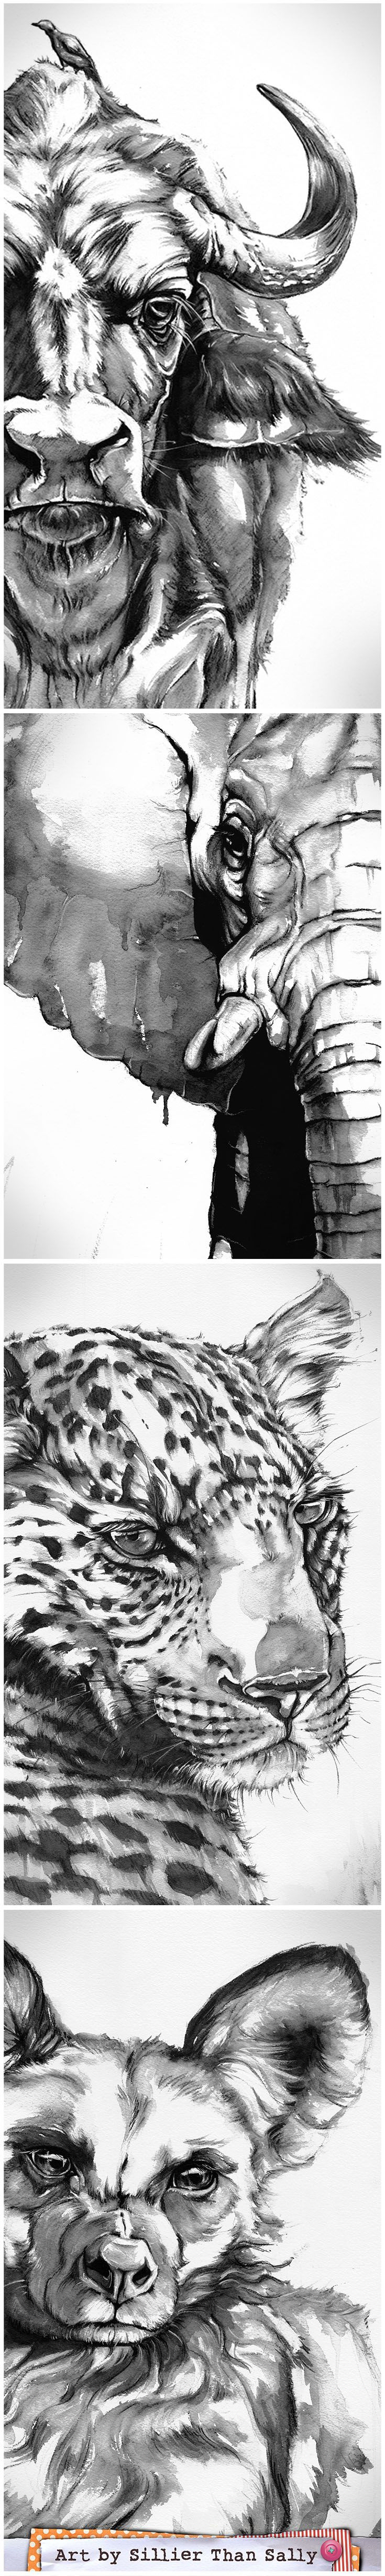 Striking Illustrative Black & White Watercolour Animal Art by Sillier Than Sally.   www.sillierthansally.com     Image of: African Wild Animals. African Buffalo, Elephant, African Leopard, African Wild Dog. Commission Wildlife Artist.